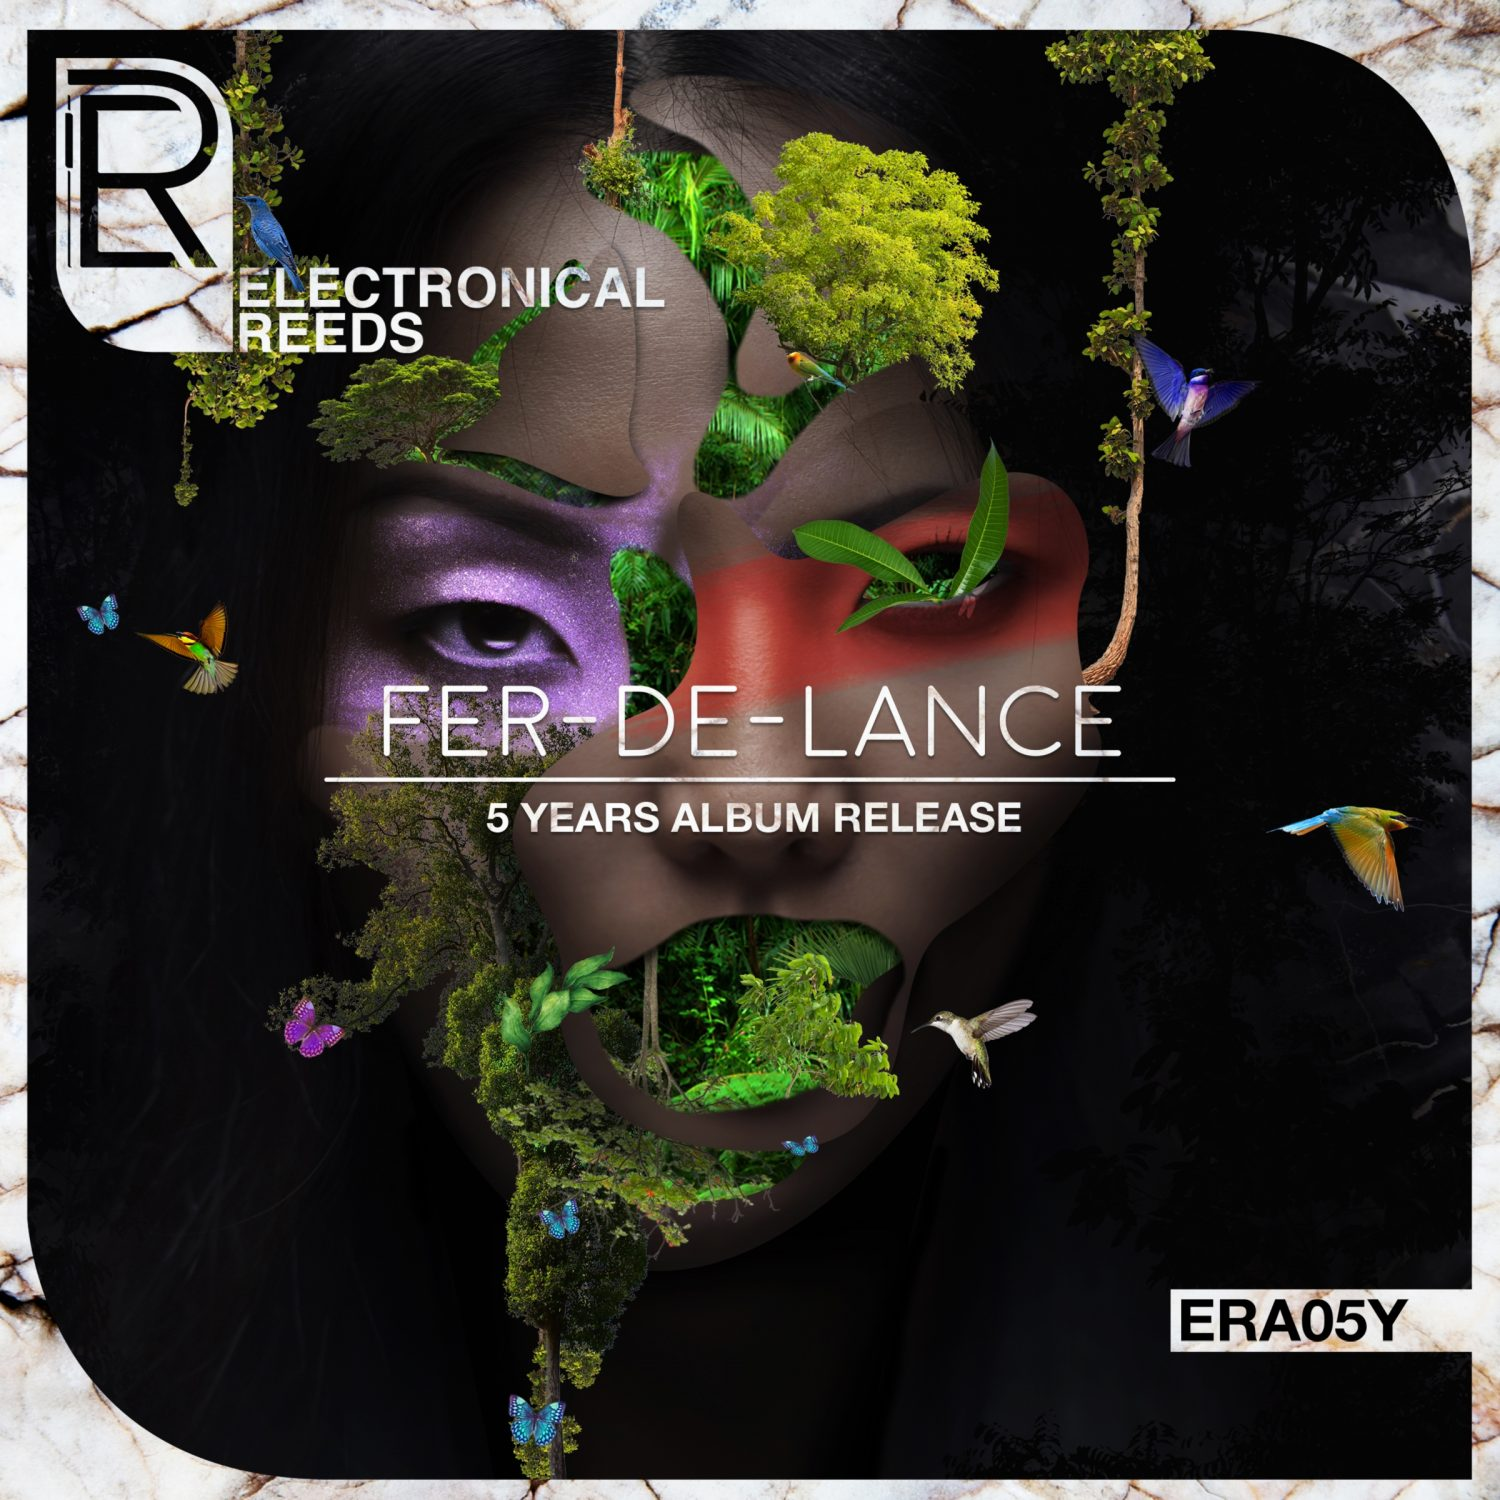 ERA05Y - Various Artists - Fer-de-Lance - 5 Years Album Release - Electronical Reeds